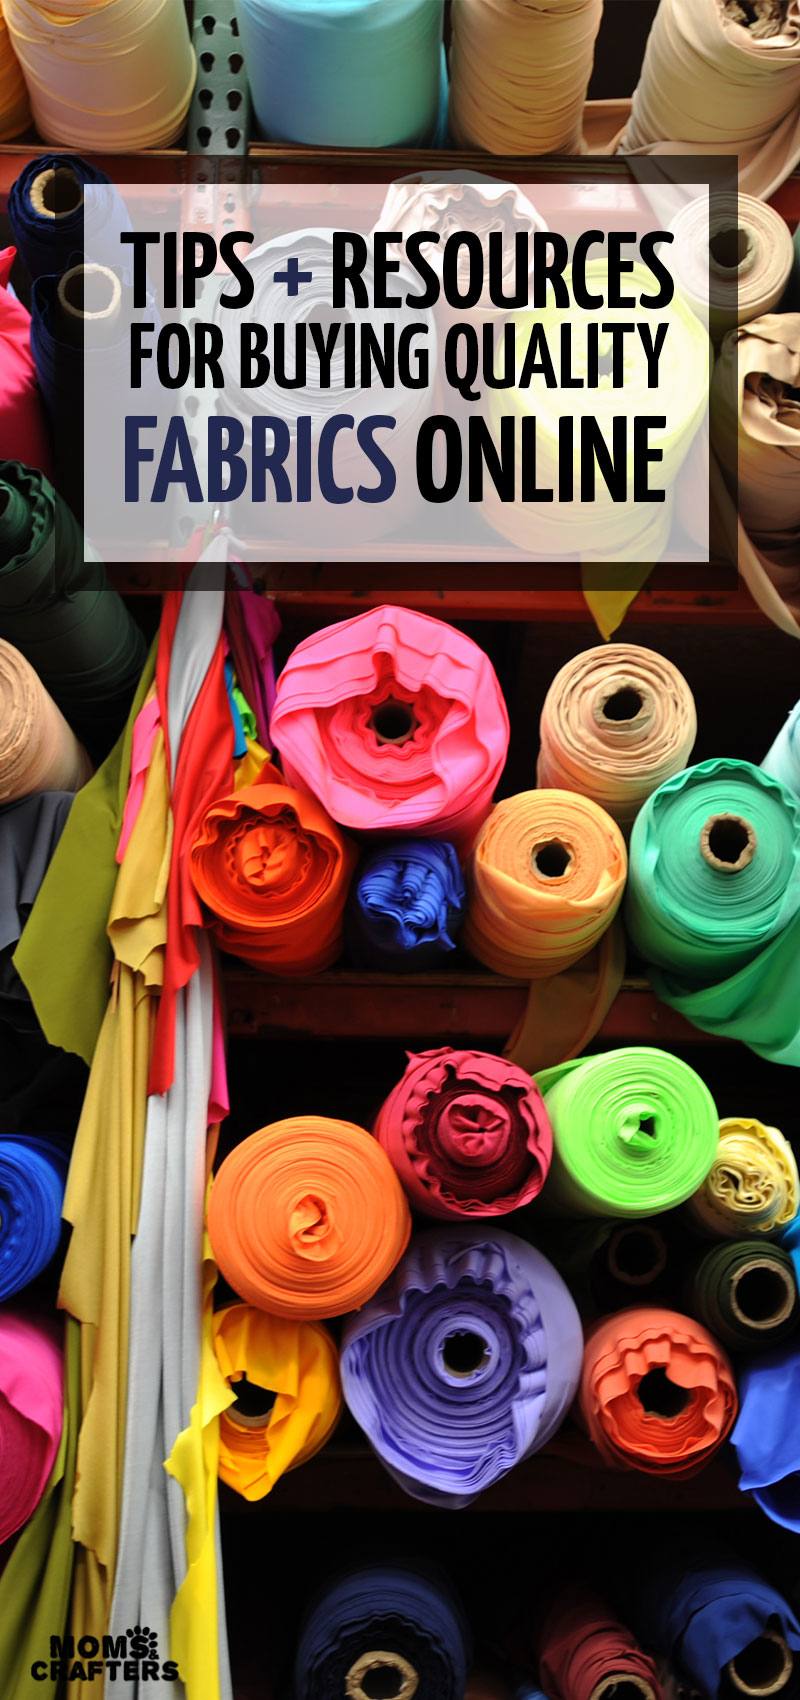 Looking to buy fabric online? This list includes tips for buying fabric online - things you should know before you do it, as well as the best place to buy fabrics online depending on which project you're working on - fashion, interior design, or even quilting #quilting #sewing #fabric